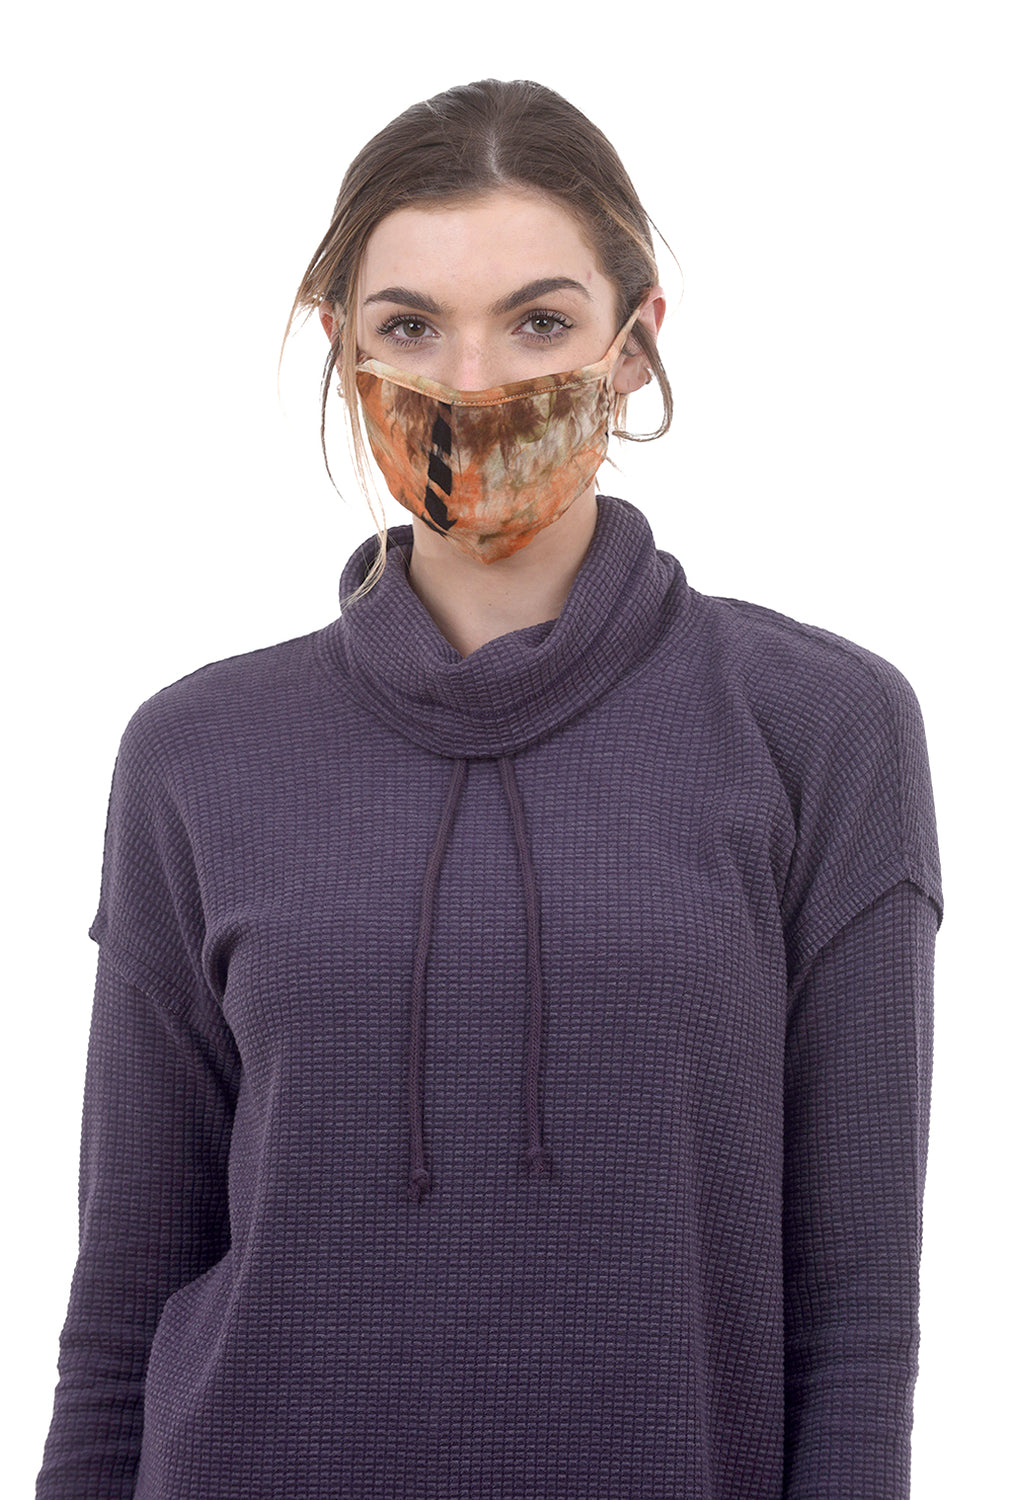 Coin 1804 Coin Tie-Dye Face Mask, Indigo/Rust One Size Rust